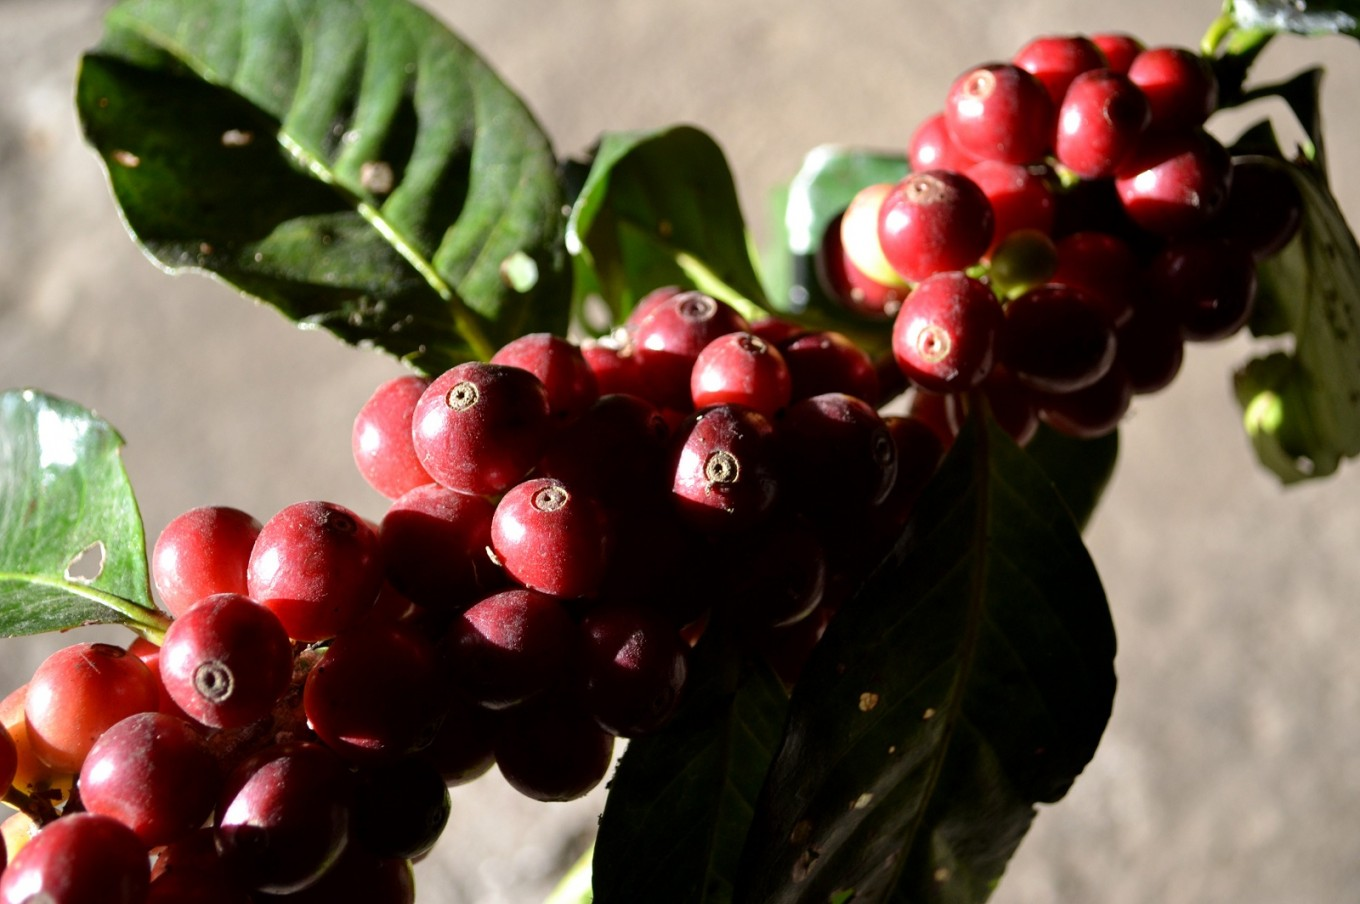 Indonesia's coffee trail: In search of your coffee cup origin